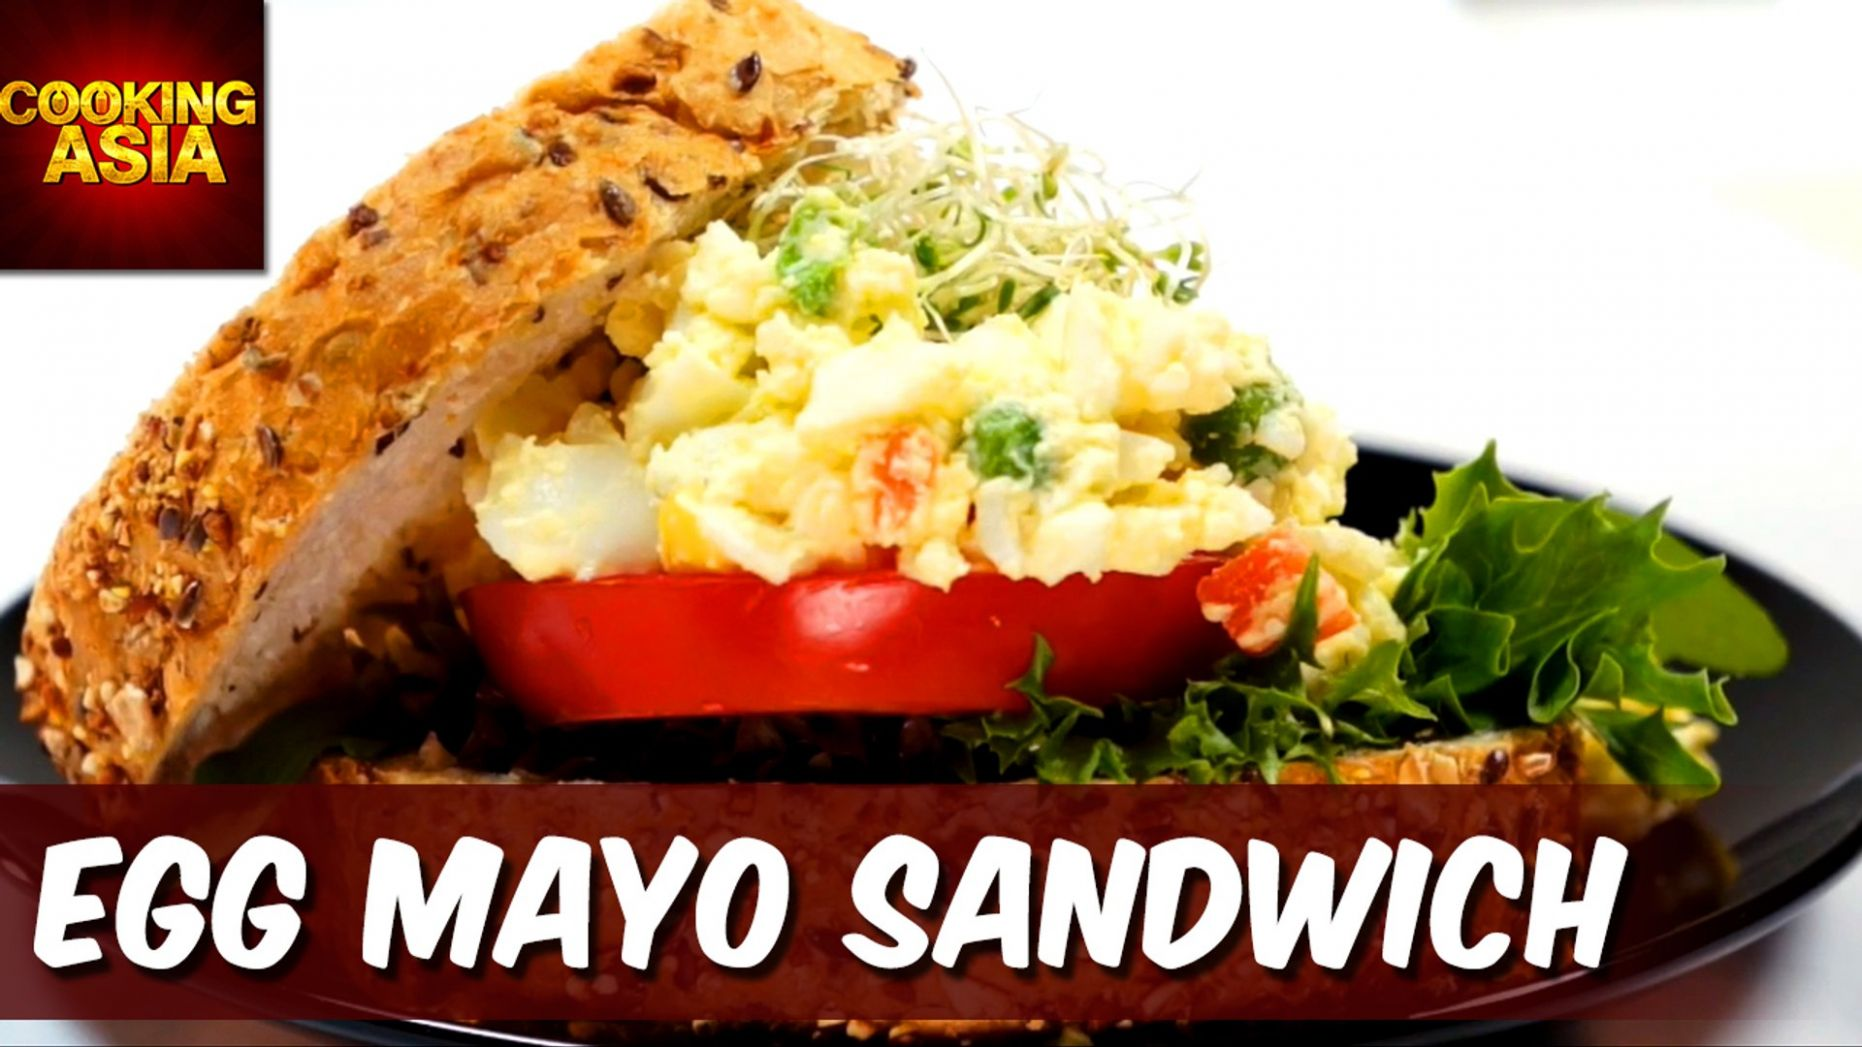 How To Make Egg Mayo Sandwich | Cooking Asia